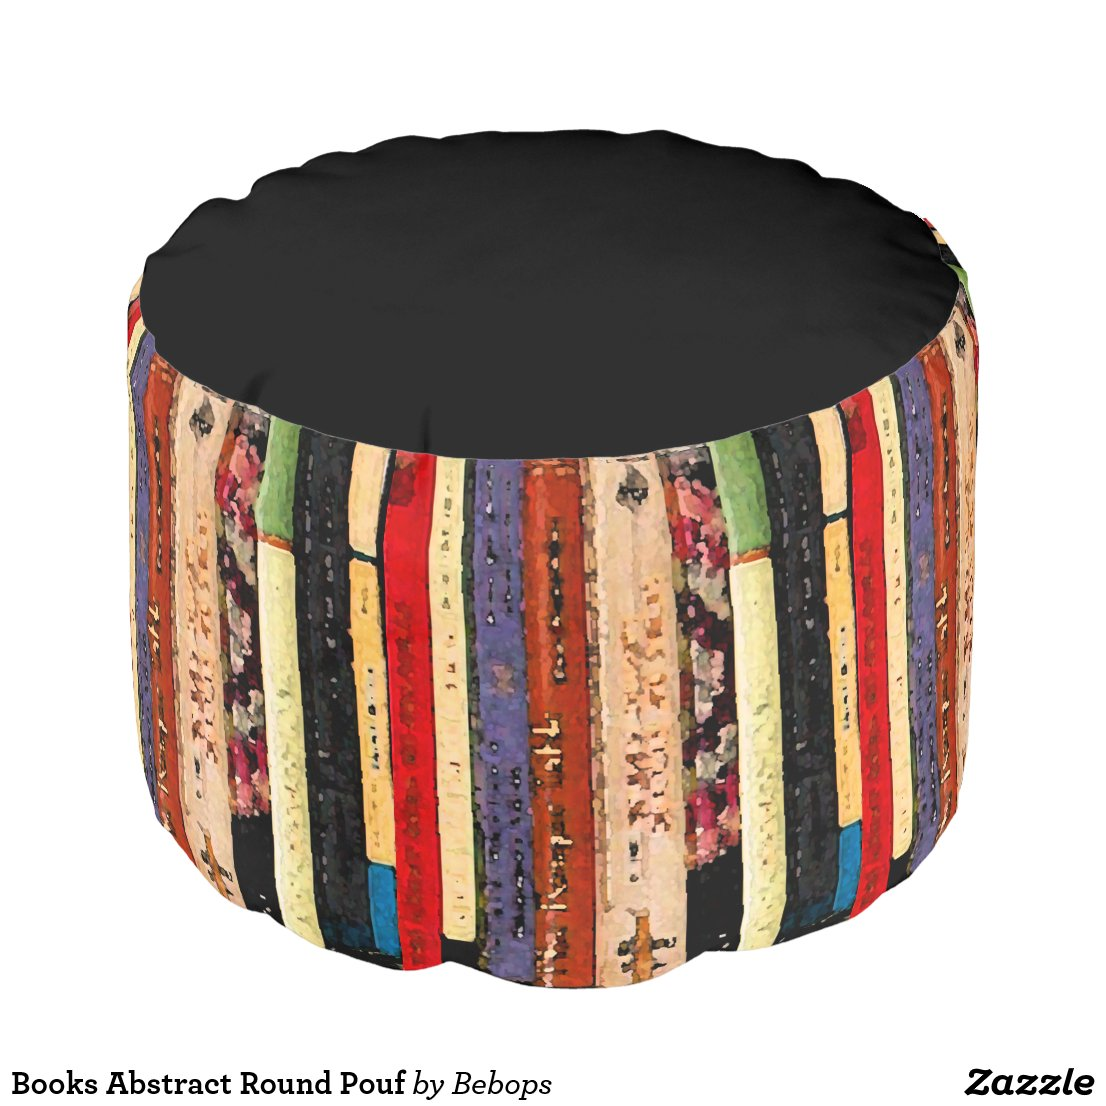 Books Abstract Round Pouf